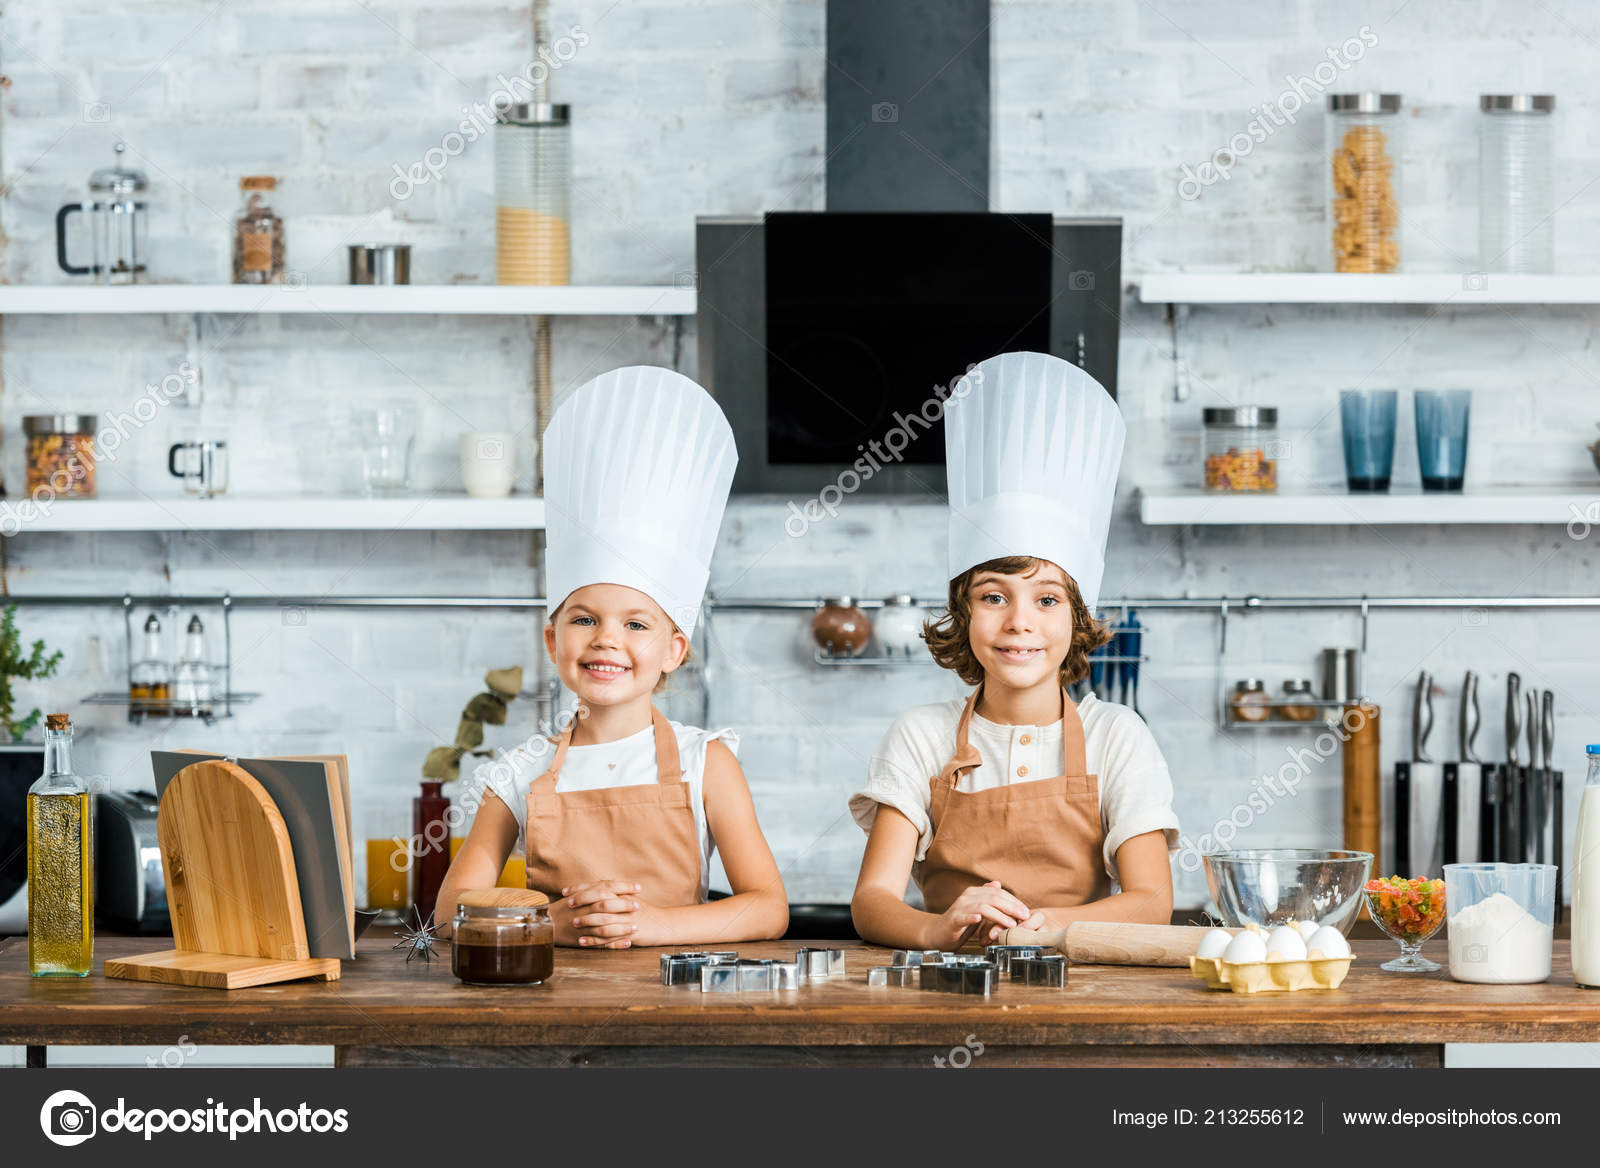 Adorable Happy Kids Aprons Chef Hats Smiling Camera While ...